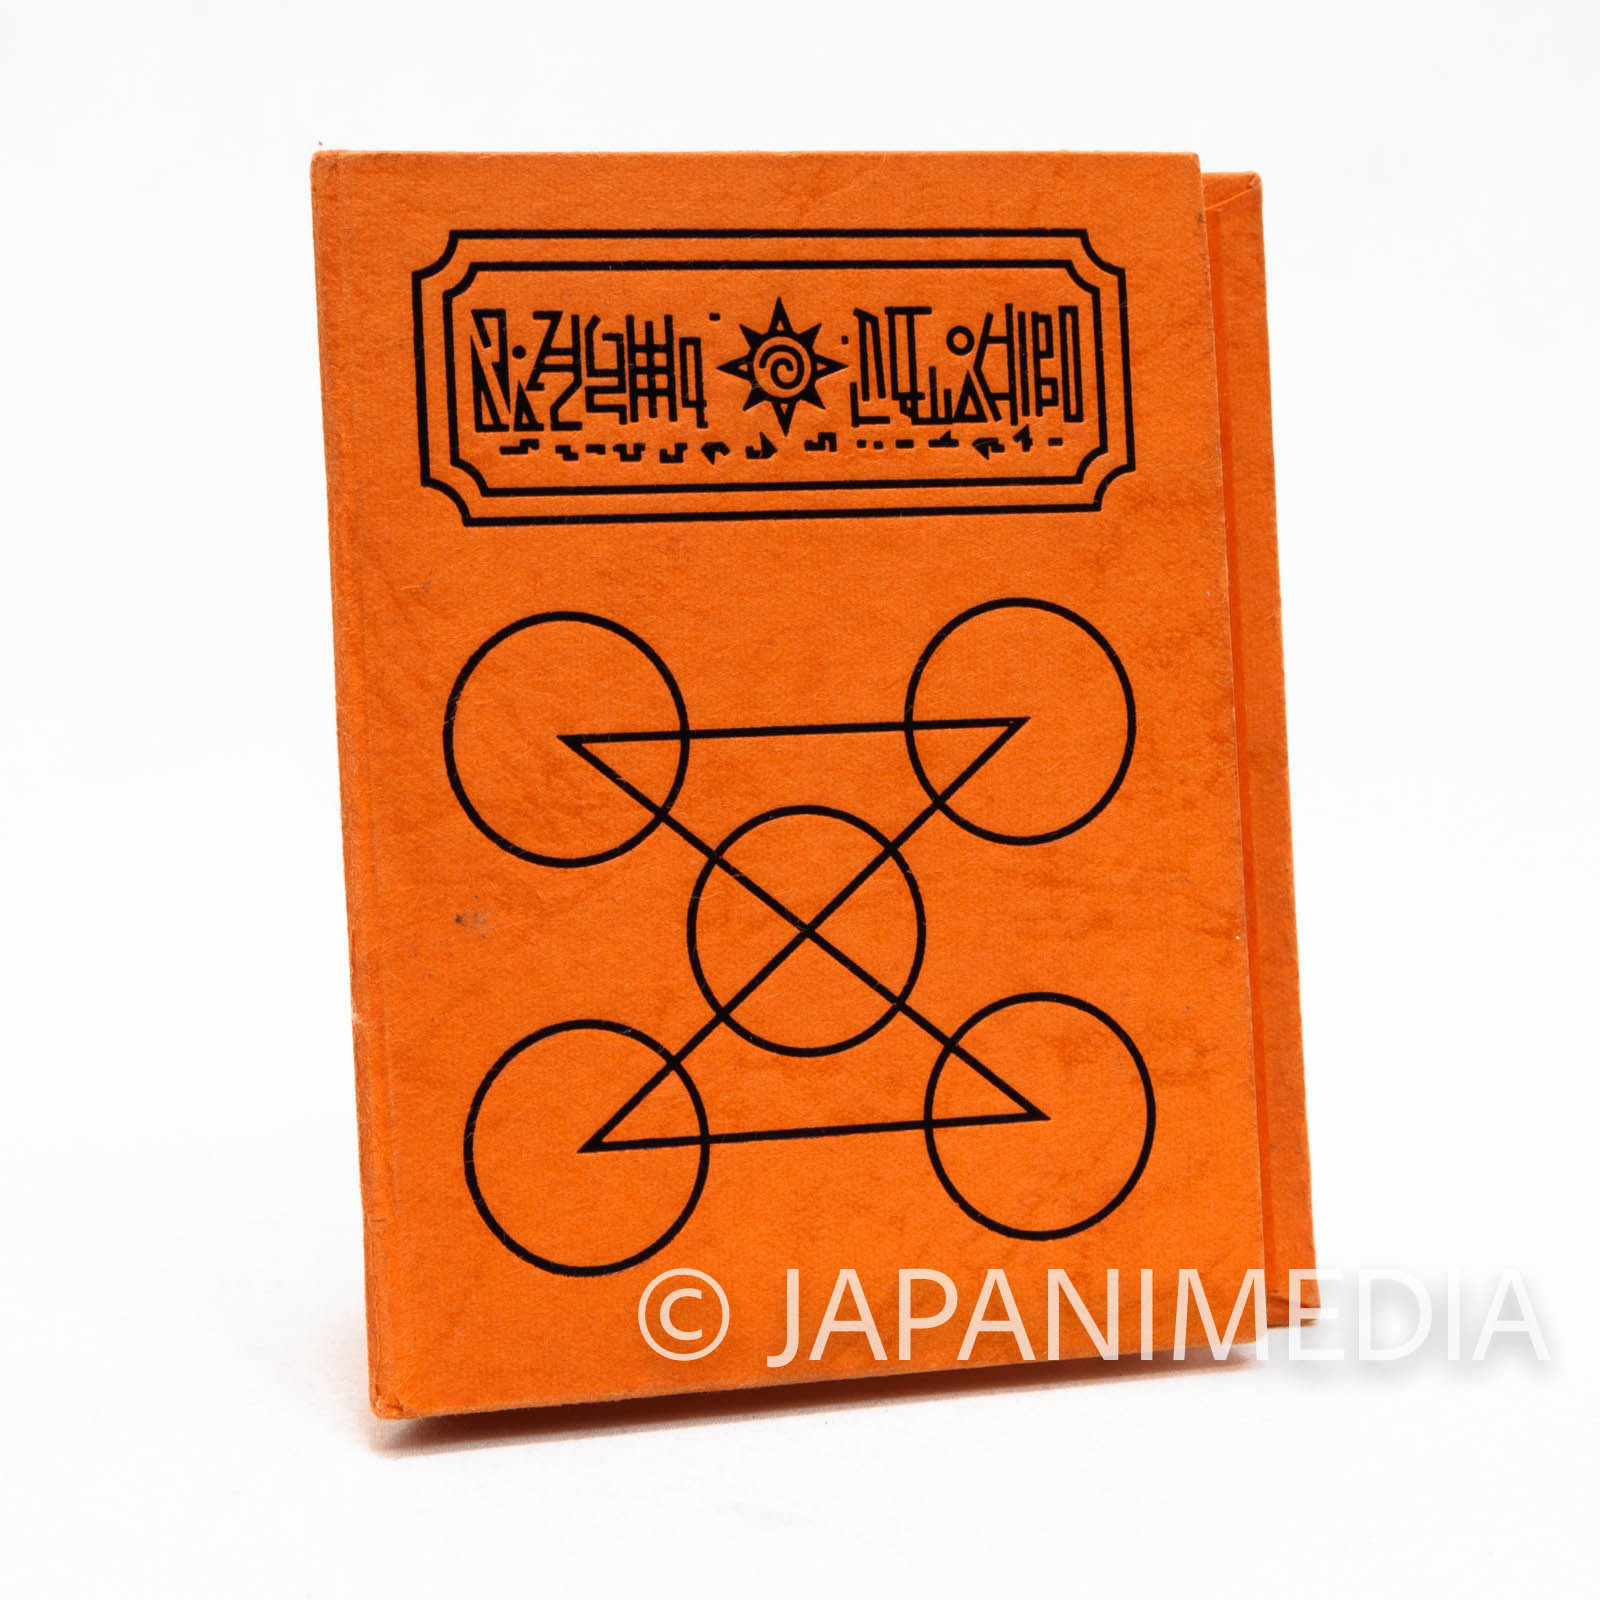 Zatch Bell! Spell Book The Card Battle Card case (Ponygon ver. Orange) JAPAN ANIME